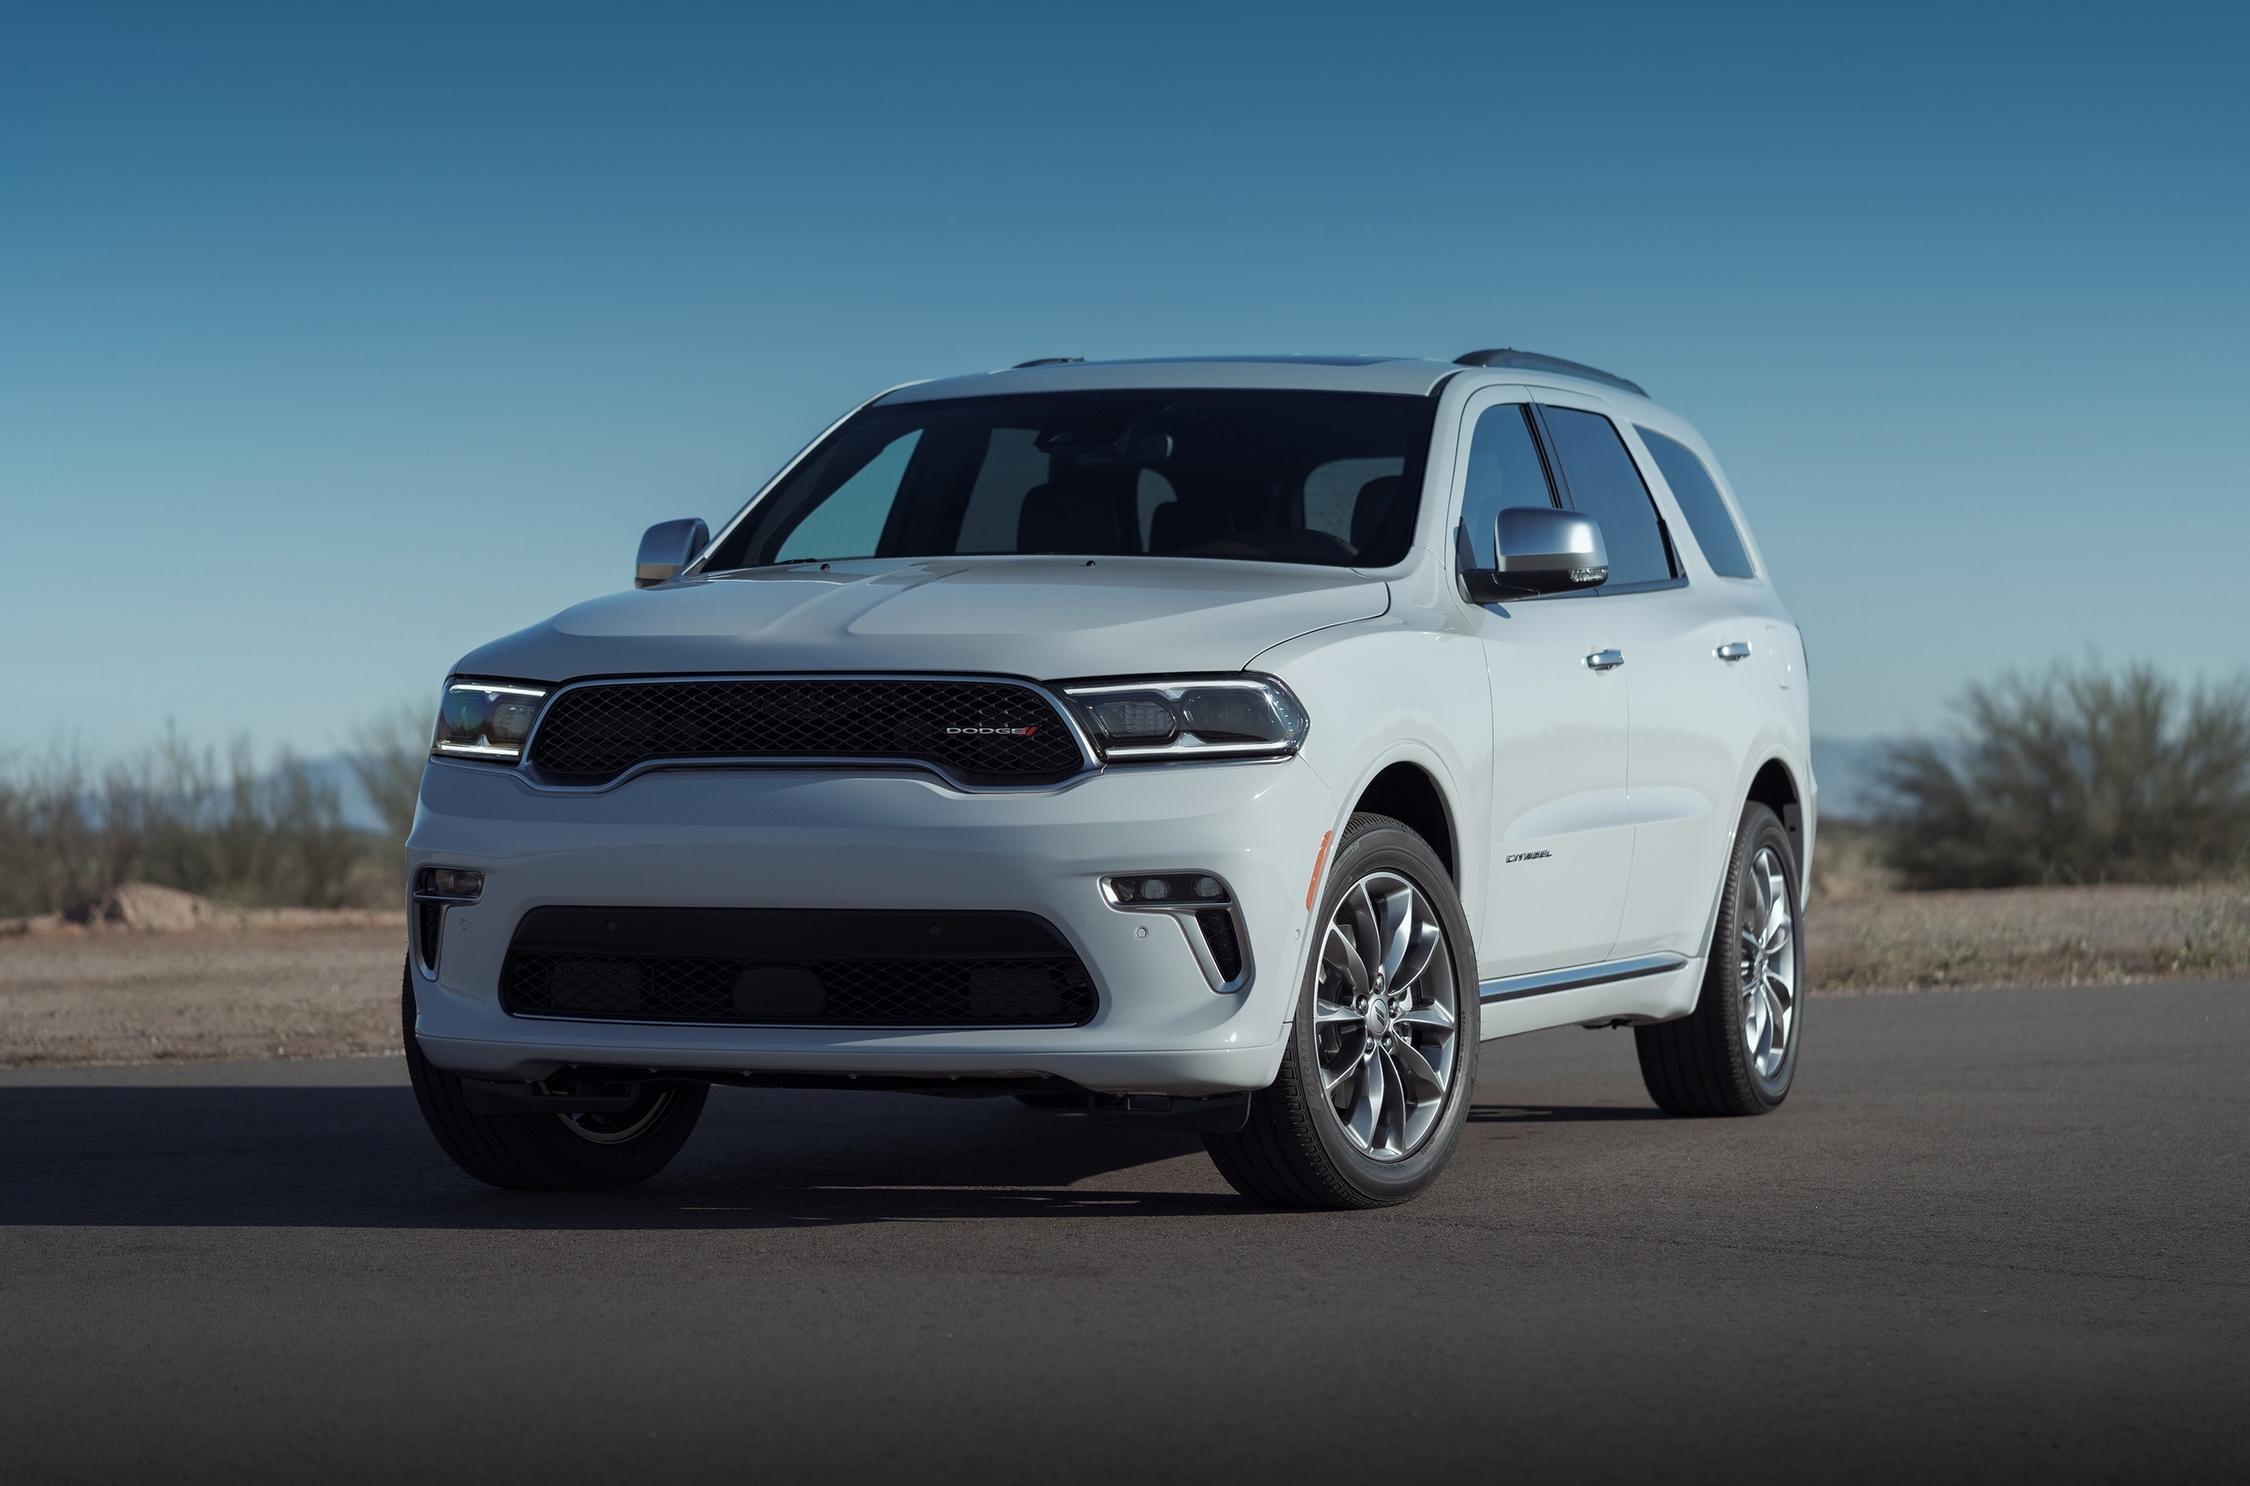 It seems that Dodge has gone back on its promise to limit the production run of its Durango SRT Hellcat SUV to just 2,000 units: According to company executive Bob Broderdorf Jr., there were simply too many orders.